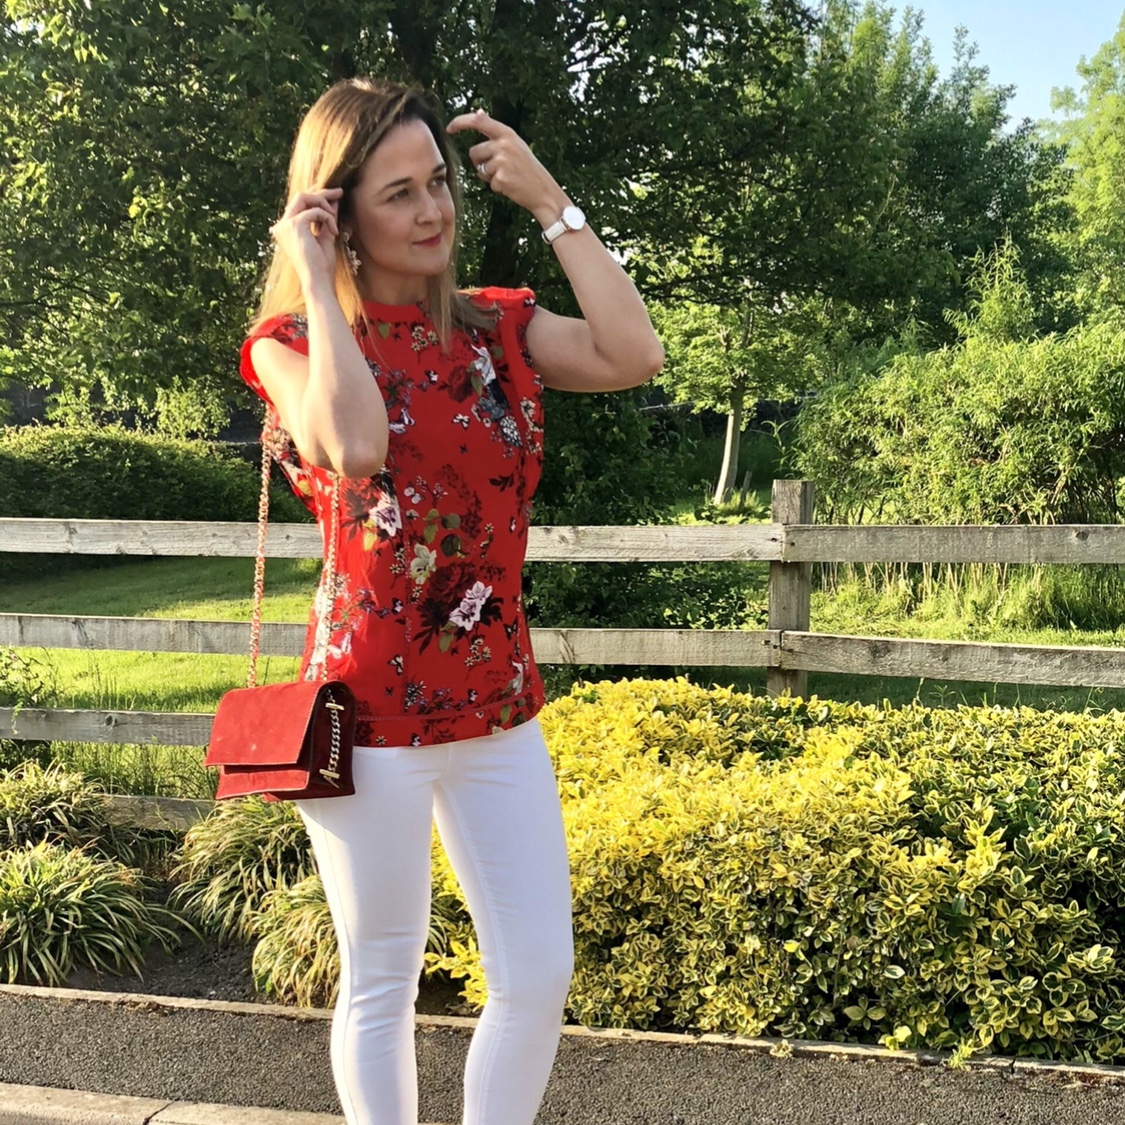 Rebecca Denise wearing Oasis Red Top and Grace jeans